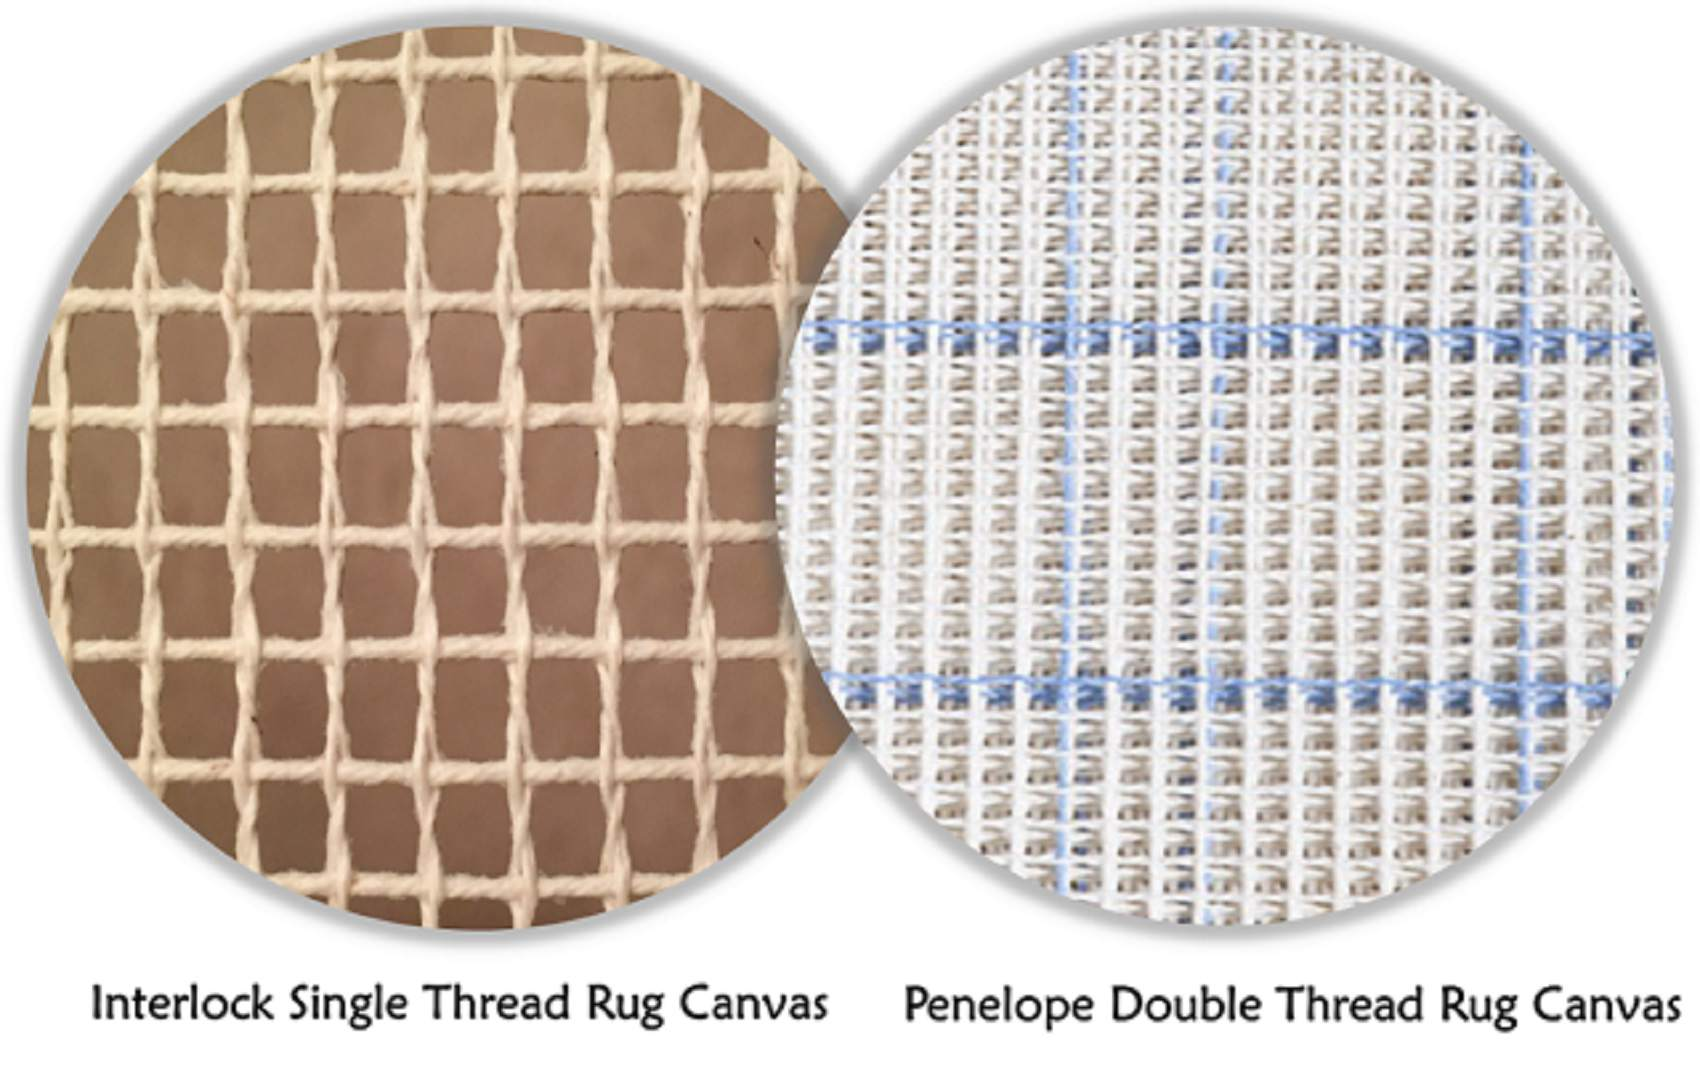 Penelope Needlepoint Canvas-Everything You Need To Know